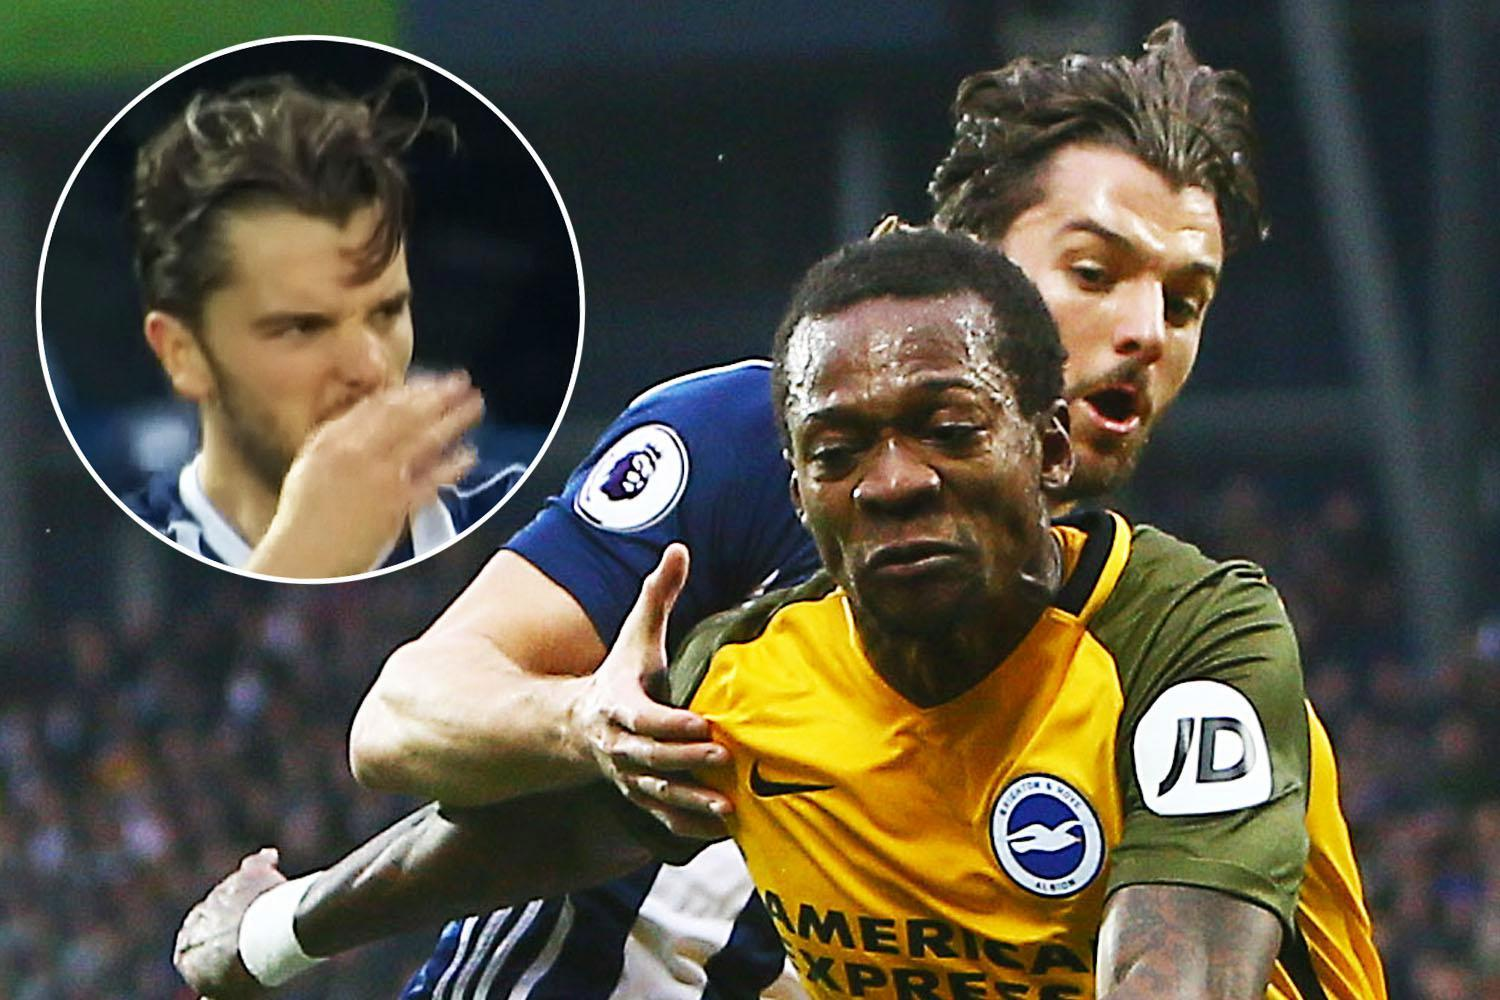 West Brom back Jay Rodriguez over racism accusations from Brighton ace Gaetan Bong as FA launch investigation